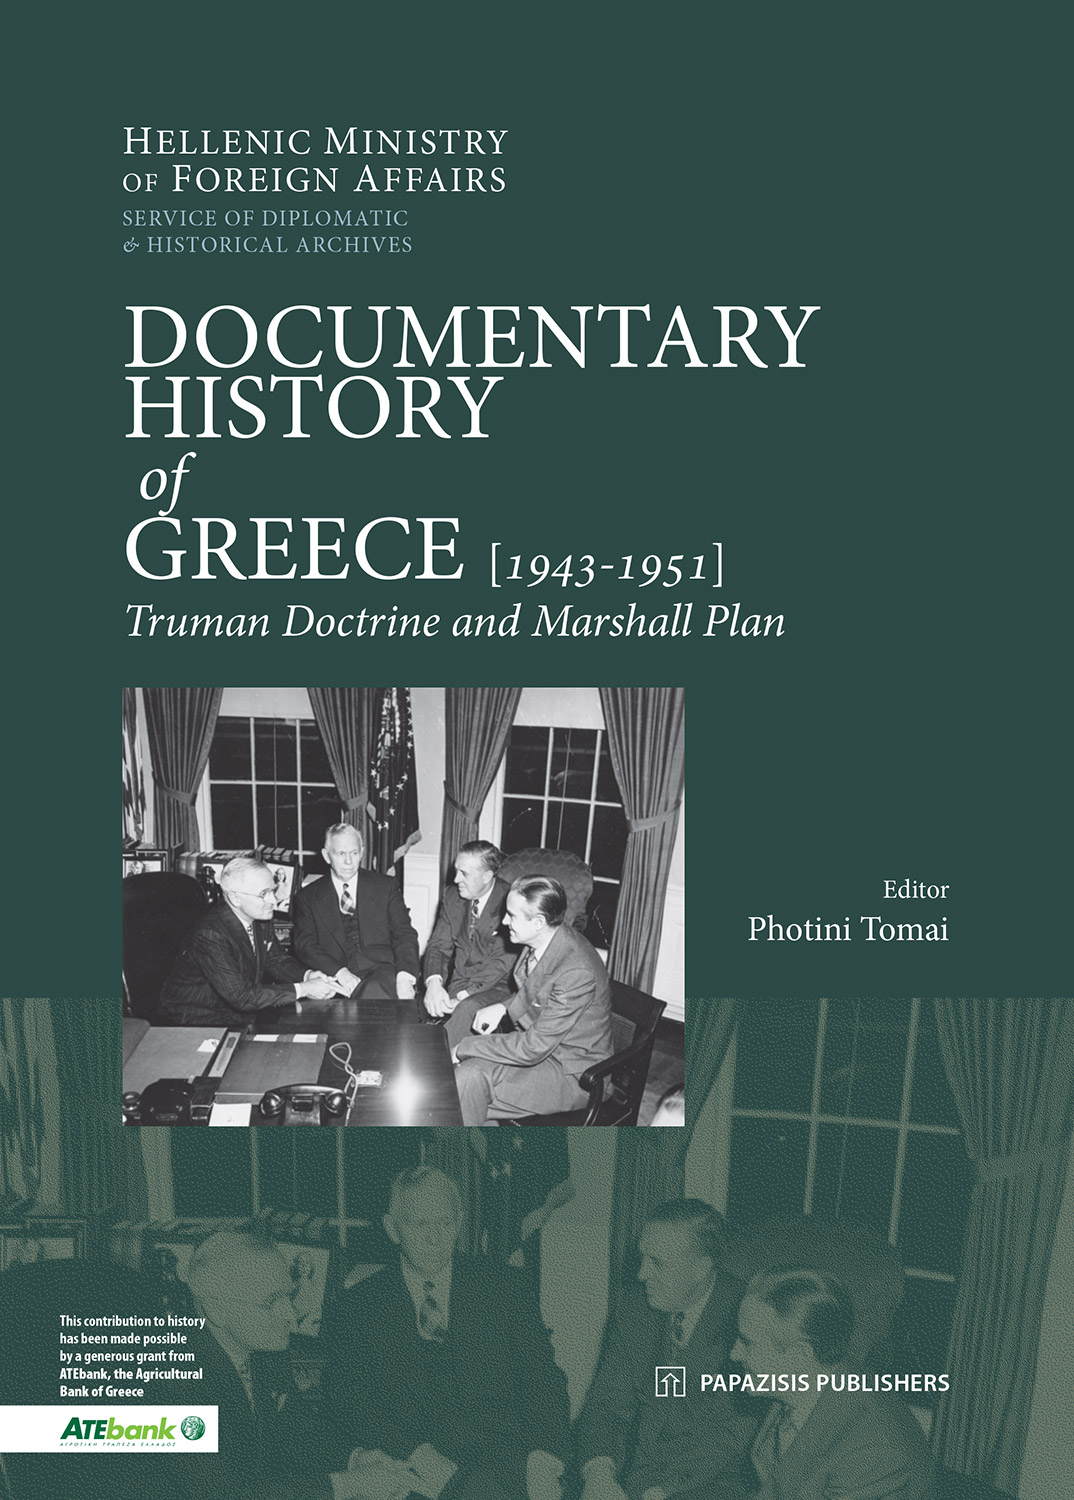 Documentary History of Greece: 1943-1951